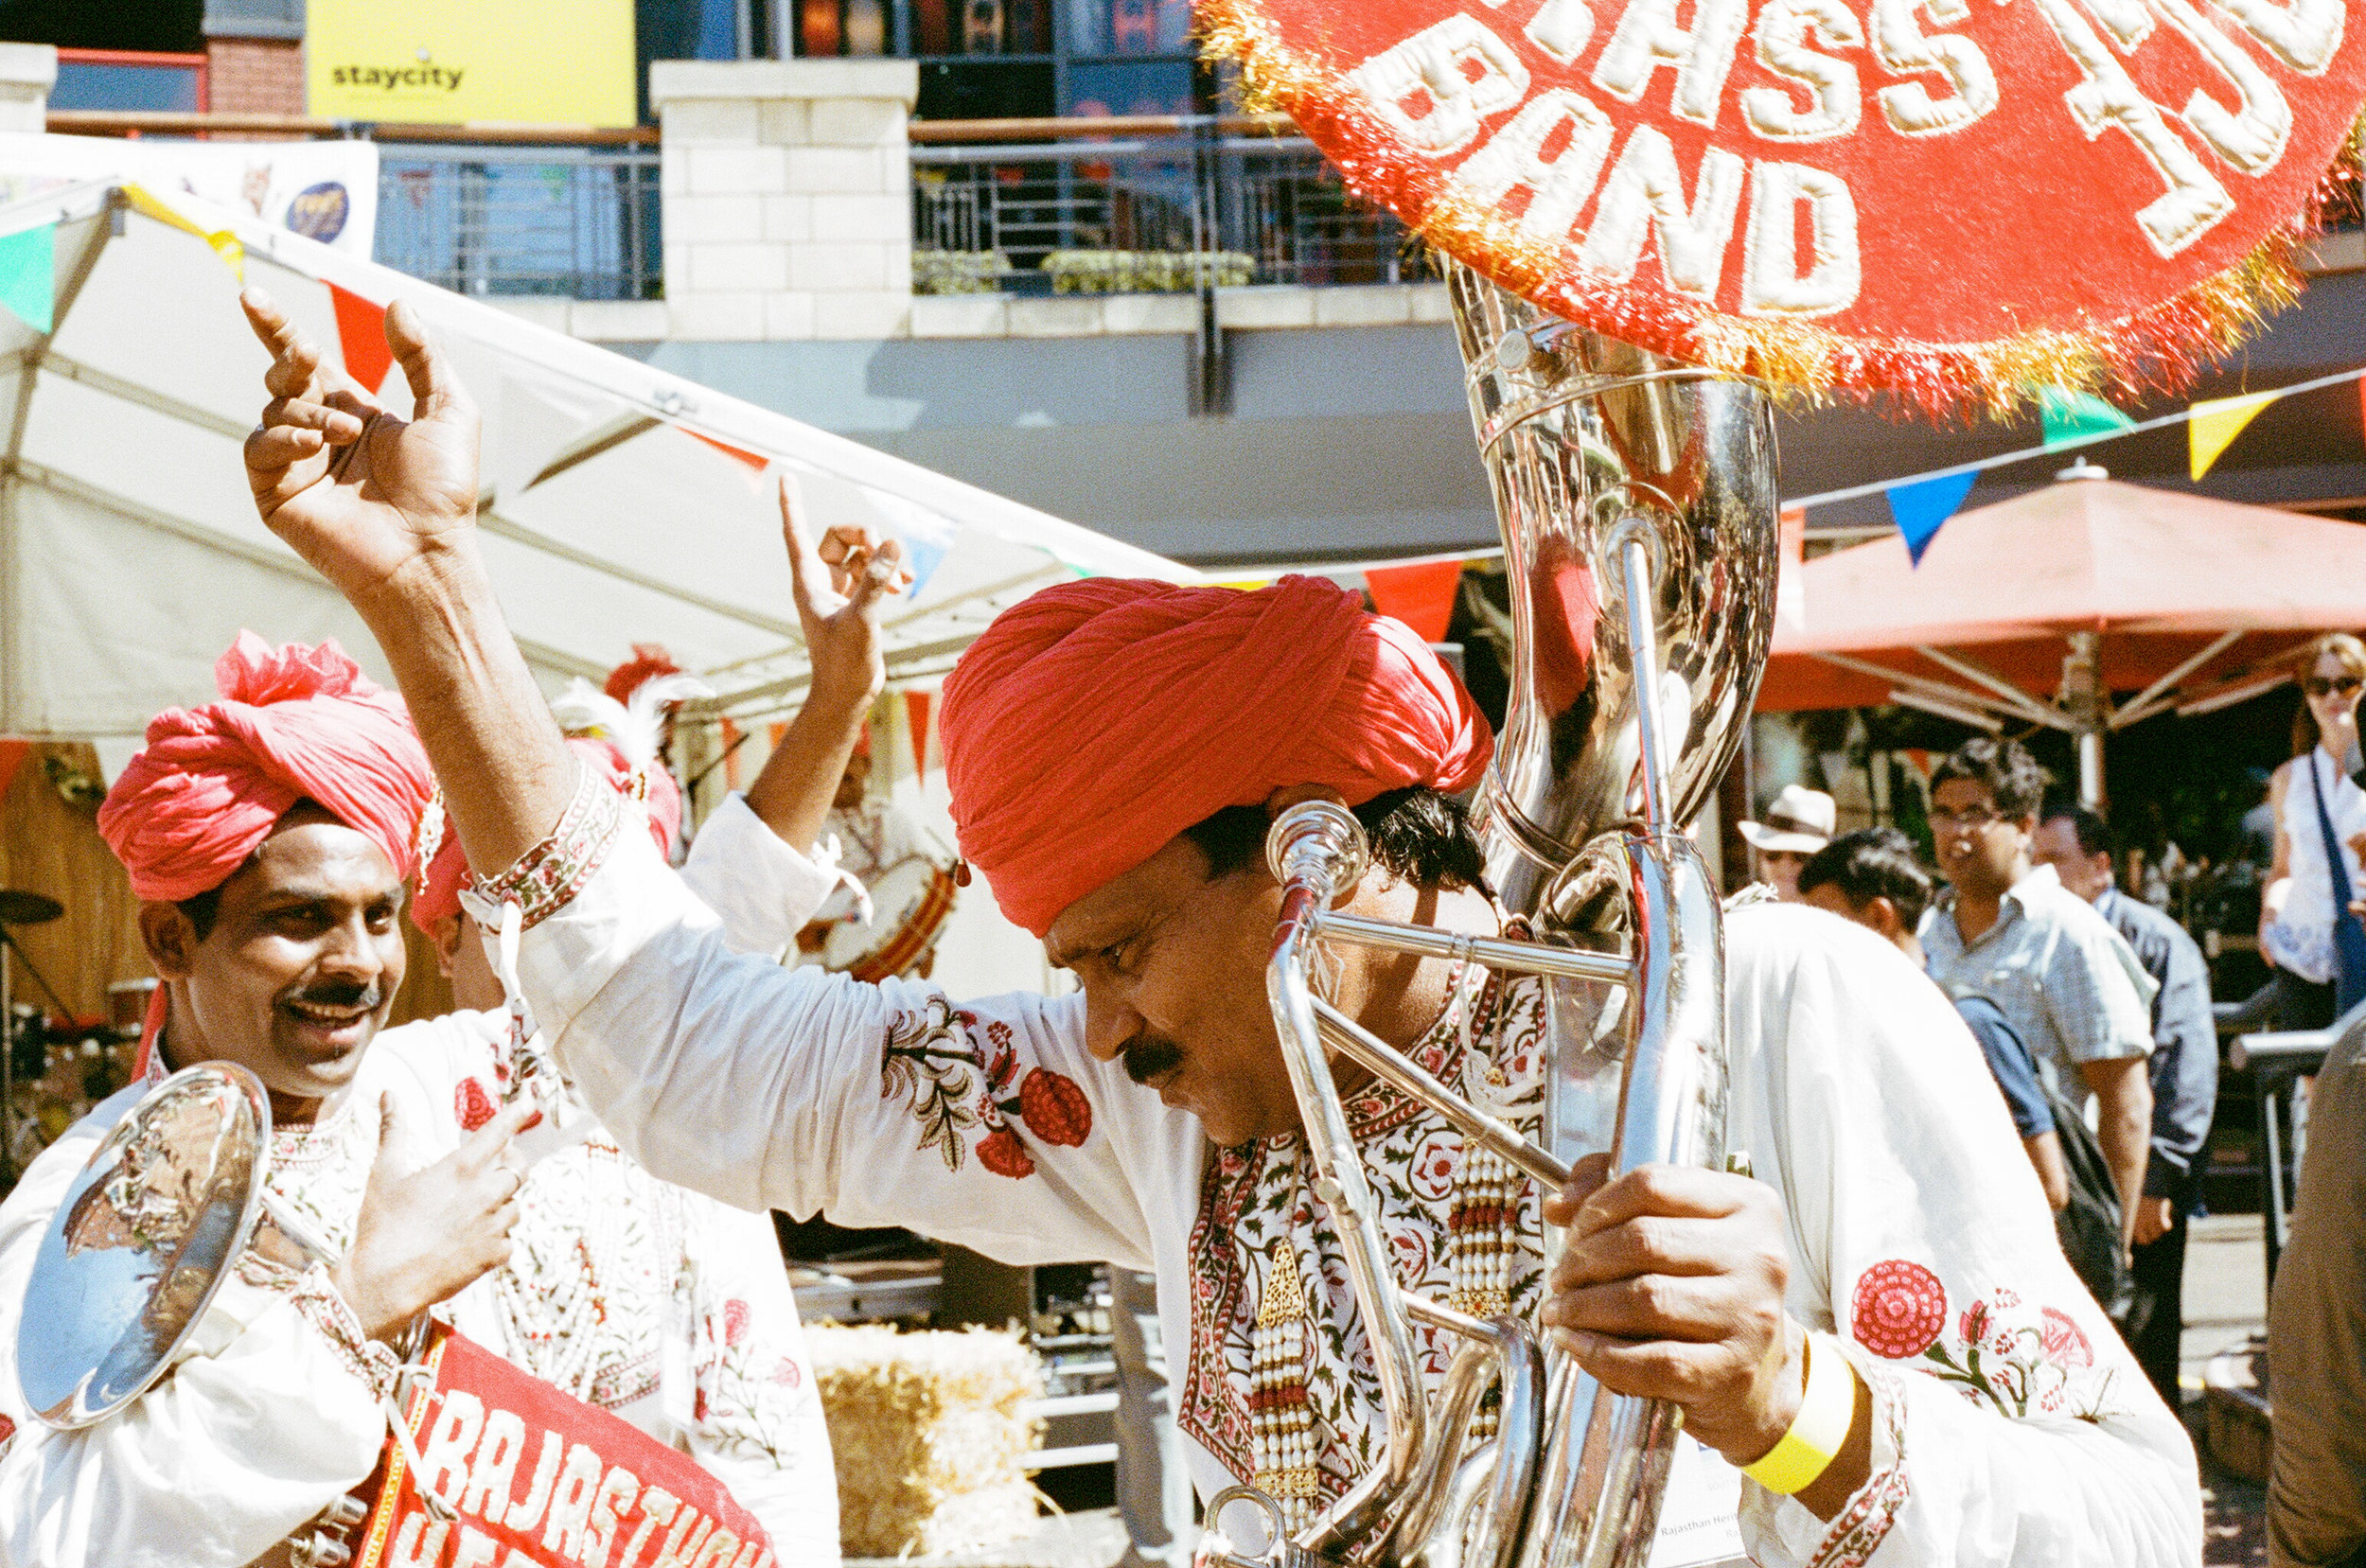 Rajasthan Heritage Brass Band, Summer in Southside - Clifford Darby 2017